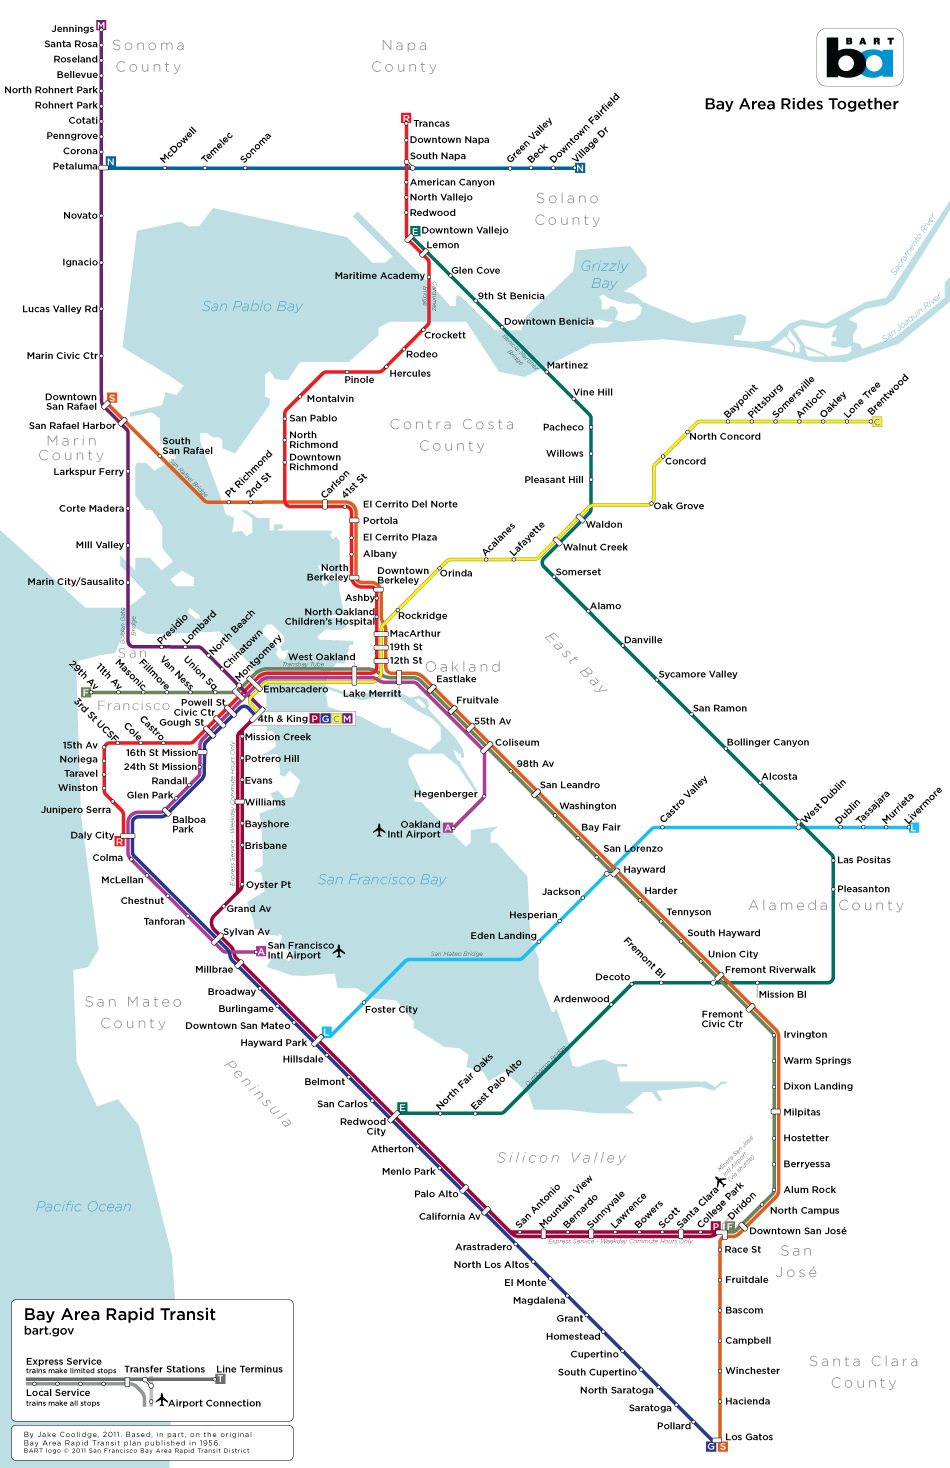 An Imaginary BART Map makes the rounds in the blogs | D-Maps ... on atlanta bart map, sacramento bart map, bart bus map, berkeley bart map, original bart map, walnut creek bart map, bay area bart map, bart system map, oakland bart map, richmond bart map, california bart map, bart muni map, bart station map, pleasanton bart map, east bay bart map, future bart map, bart sfo airport map, los angeles bart map, pittsburgh bart map, dallas bart map,